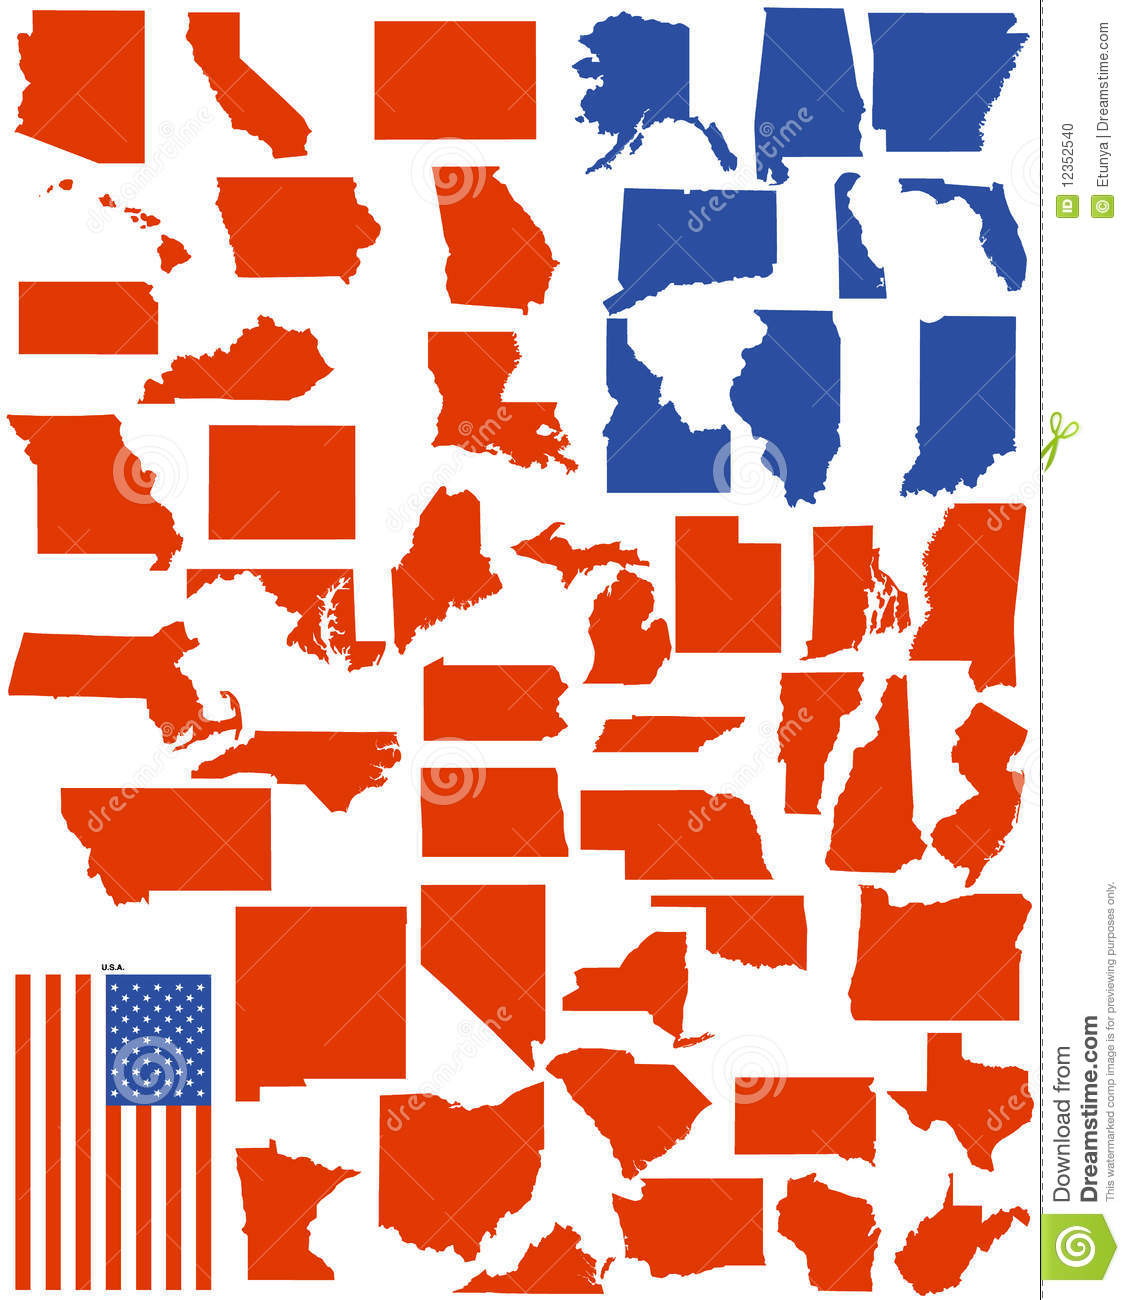 20 America States Vector Images